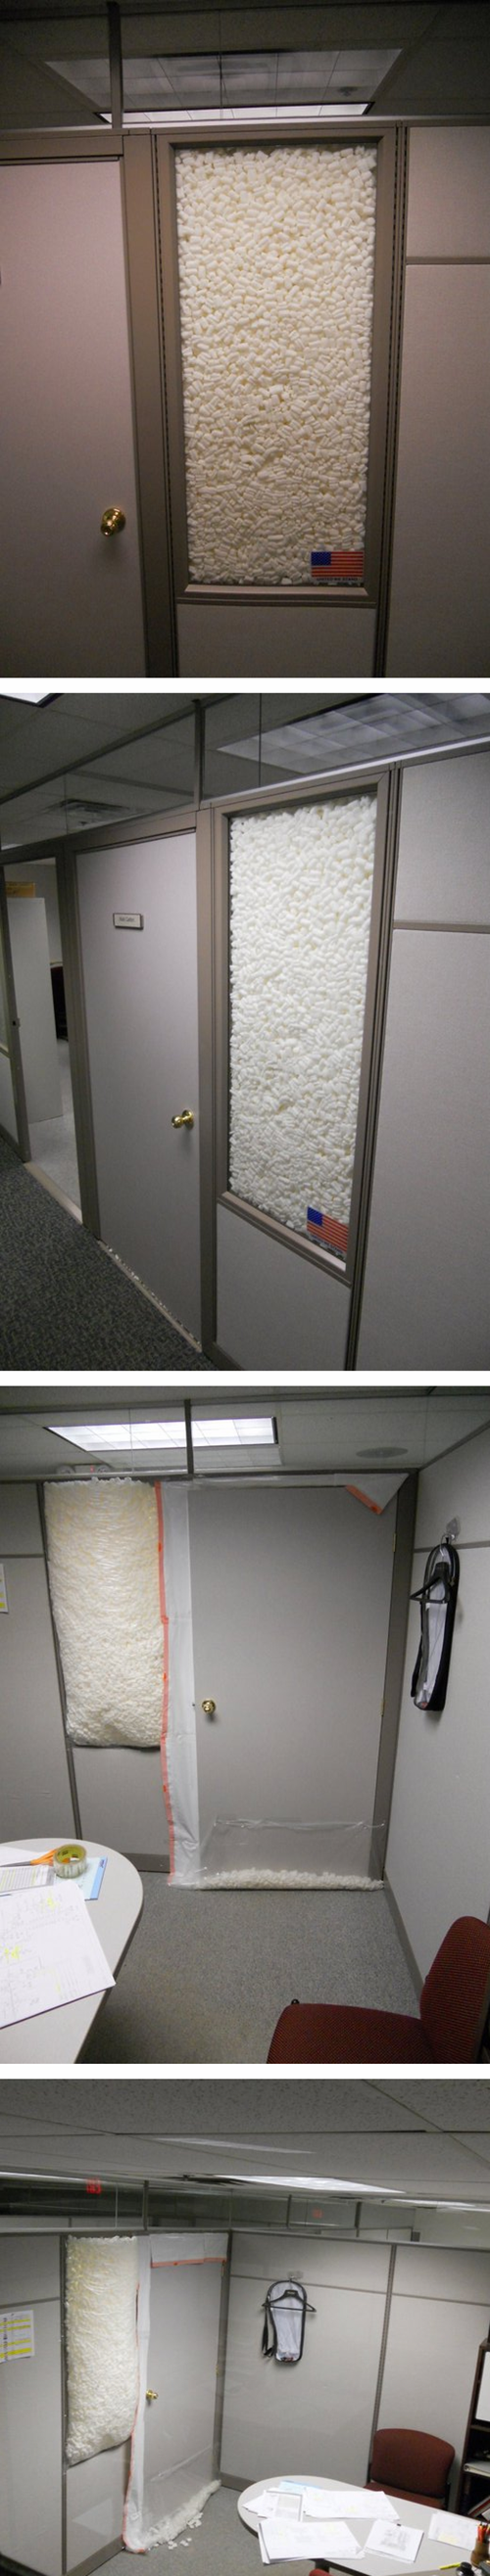 offices april fools pranks monday thru friday grated - 7231000832